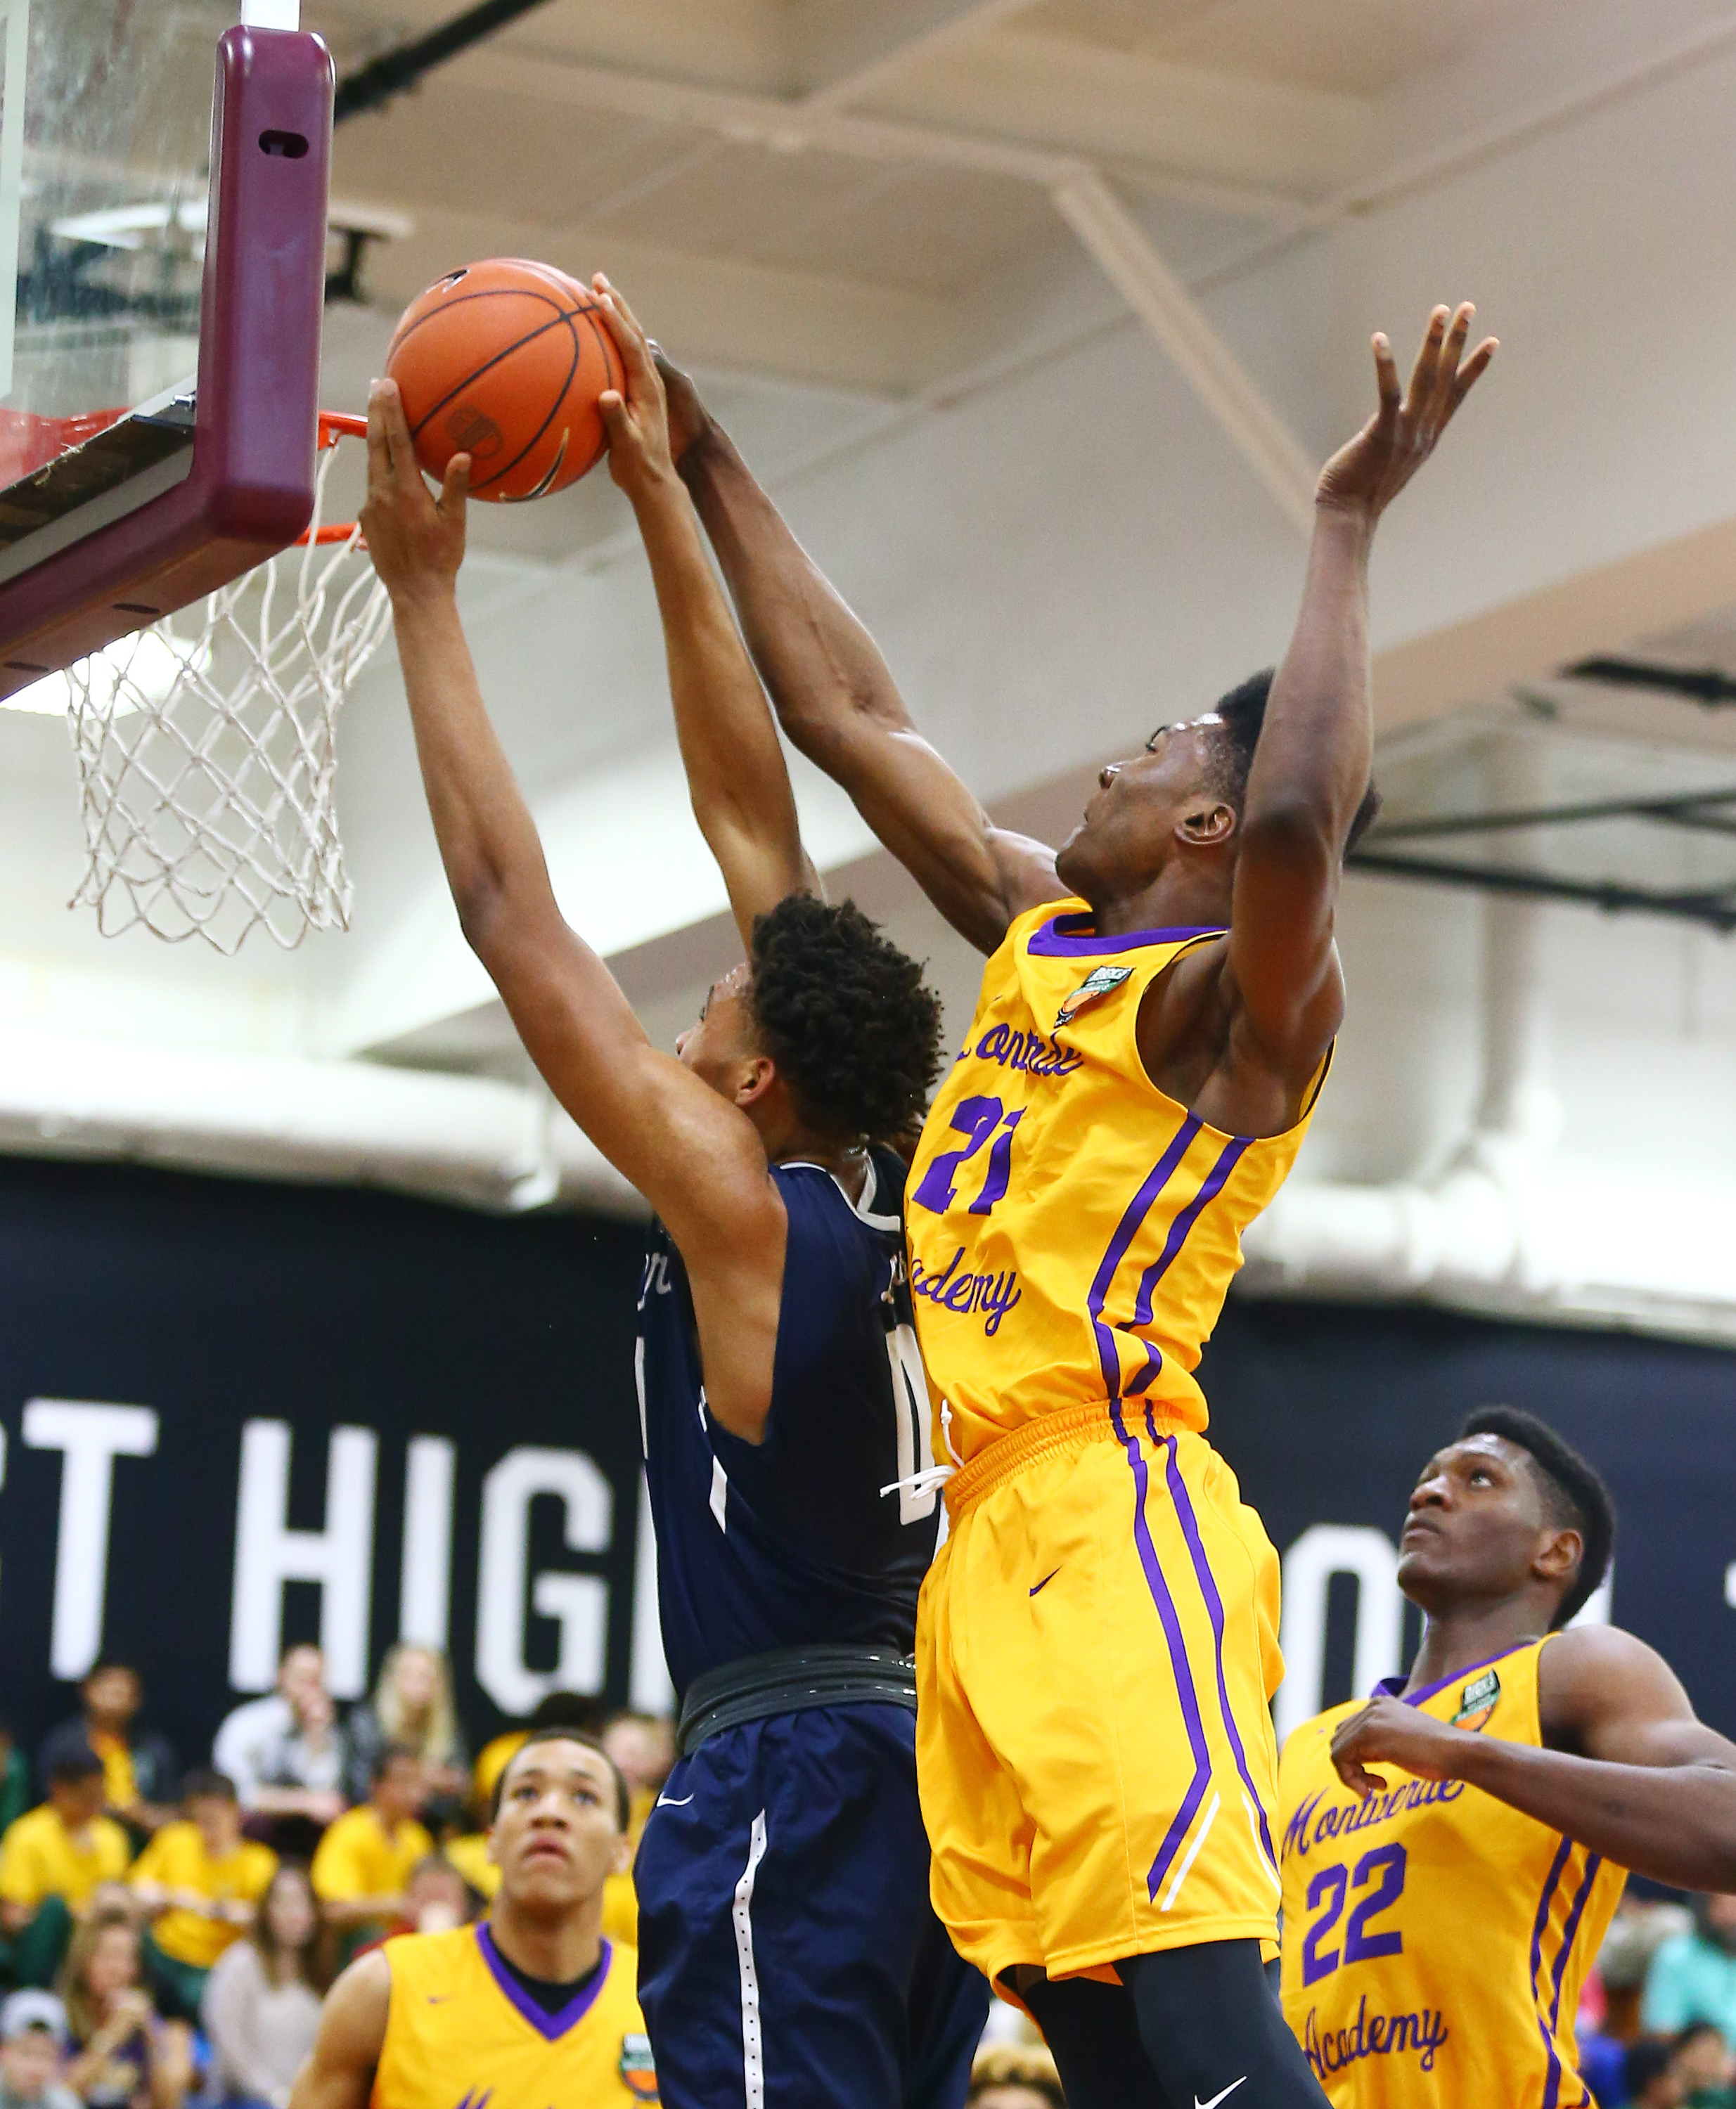 Montverde Academy forward Bruno Fernando (21) defends during the DICK'S Sporting Goods High School Basketball Nationals (Photo: Andy Marlin, USA TODAY Sports)